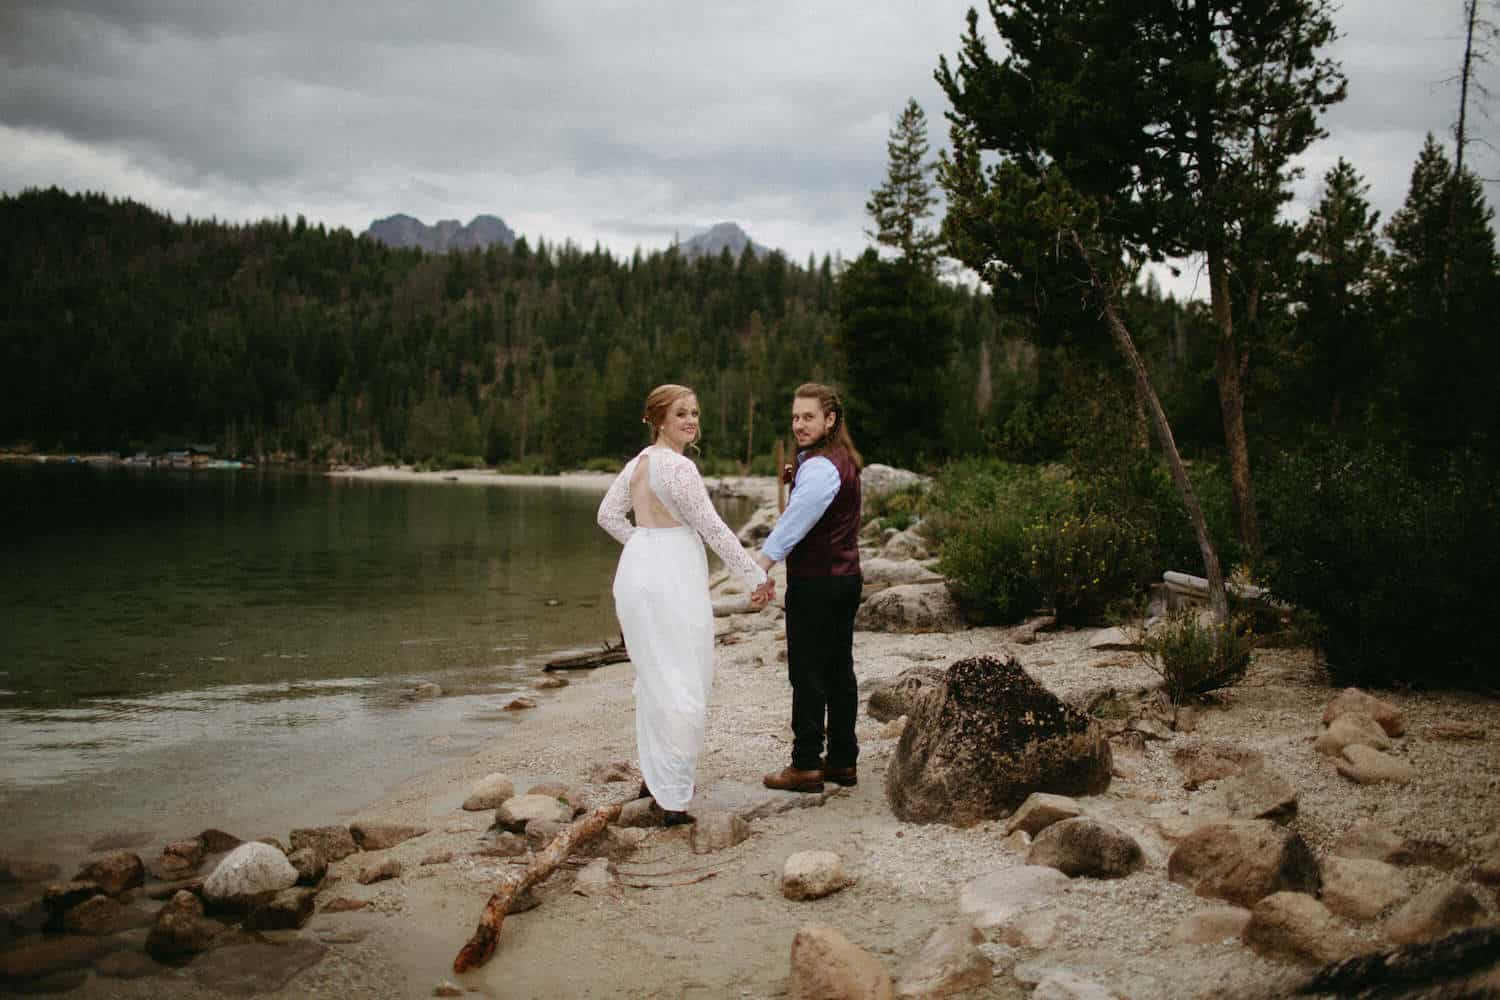 Idaho Redfish Lake Elopement Caitlin and Brandon's Wedding Christine Marie Photography Simply Eloped 6